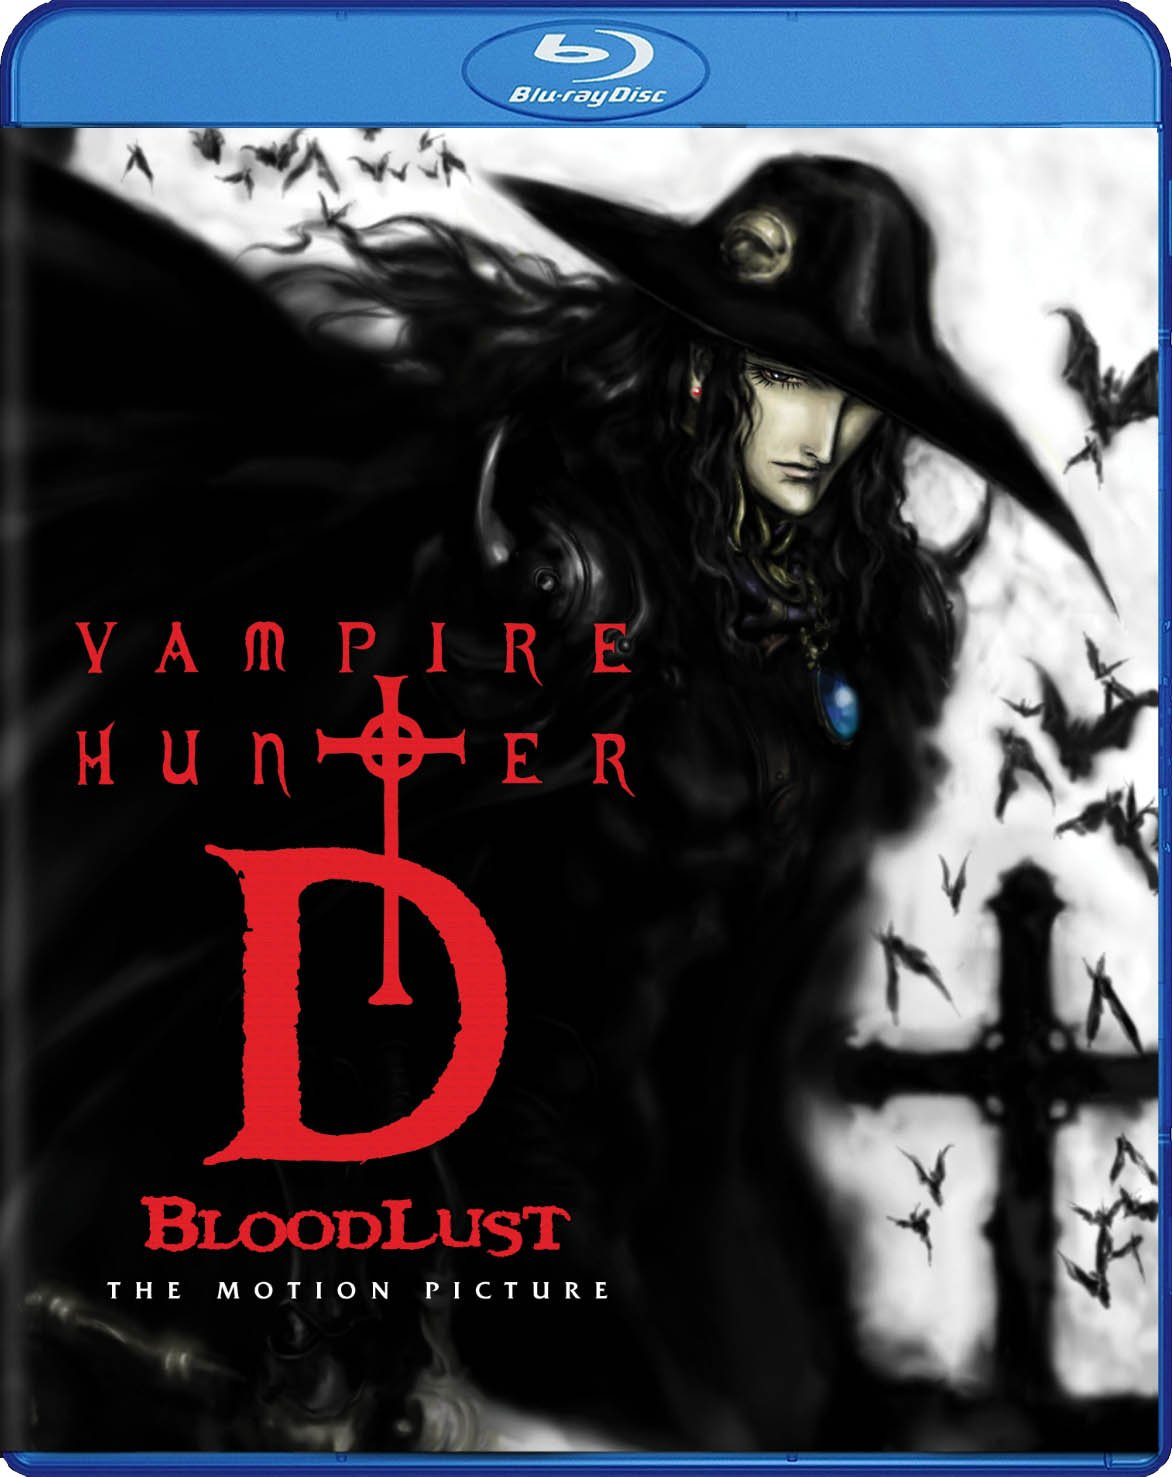 Blu-ray : Vampire Hunter D Bloodlust (Blu-ray)